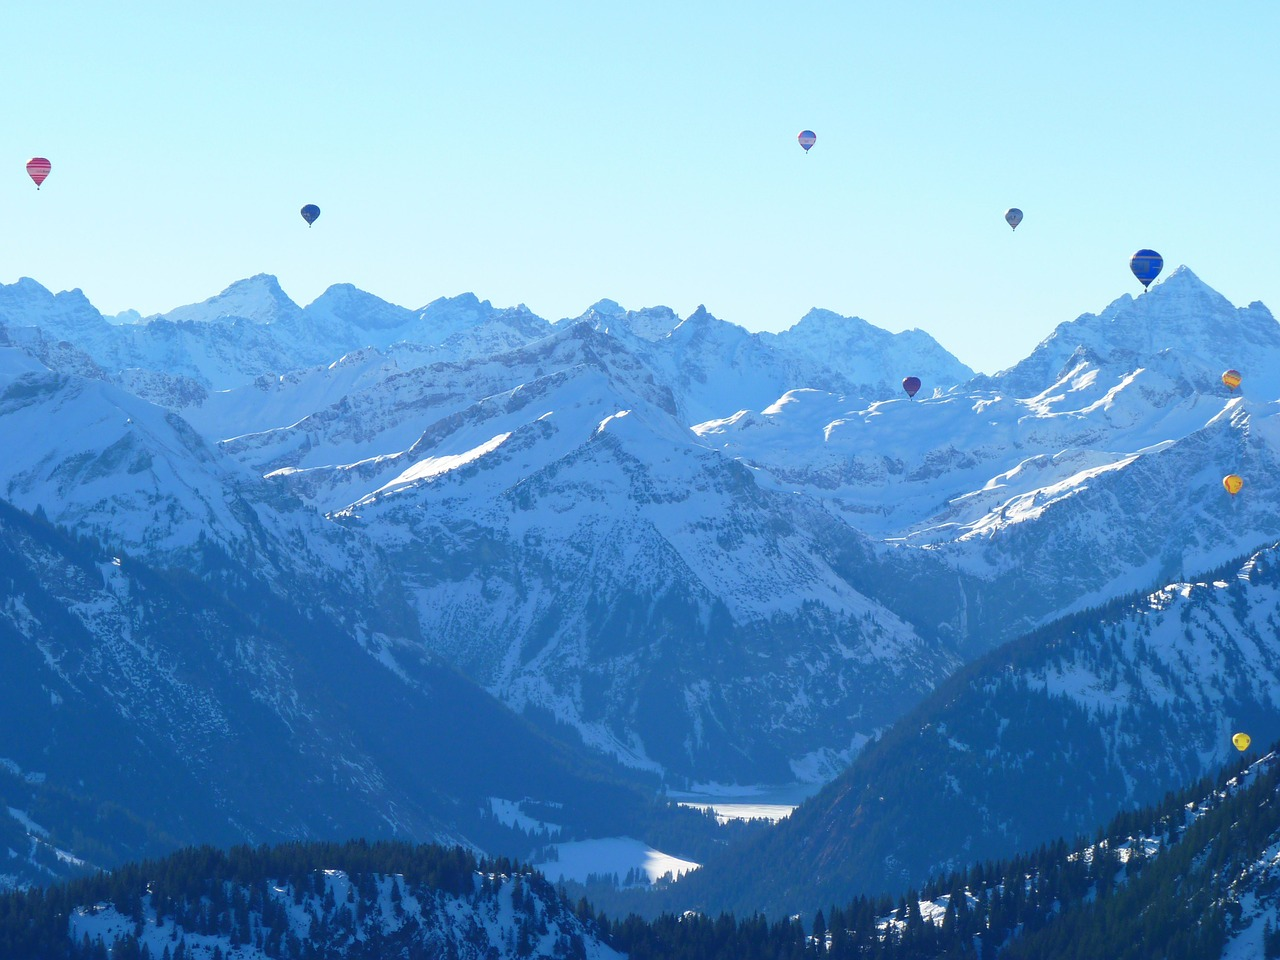 balloon hot air balloon mountains free photo